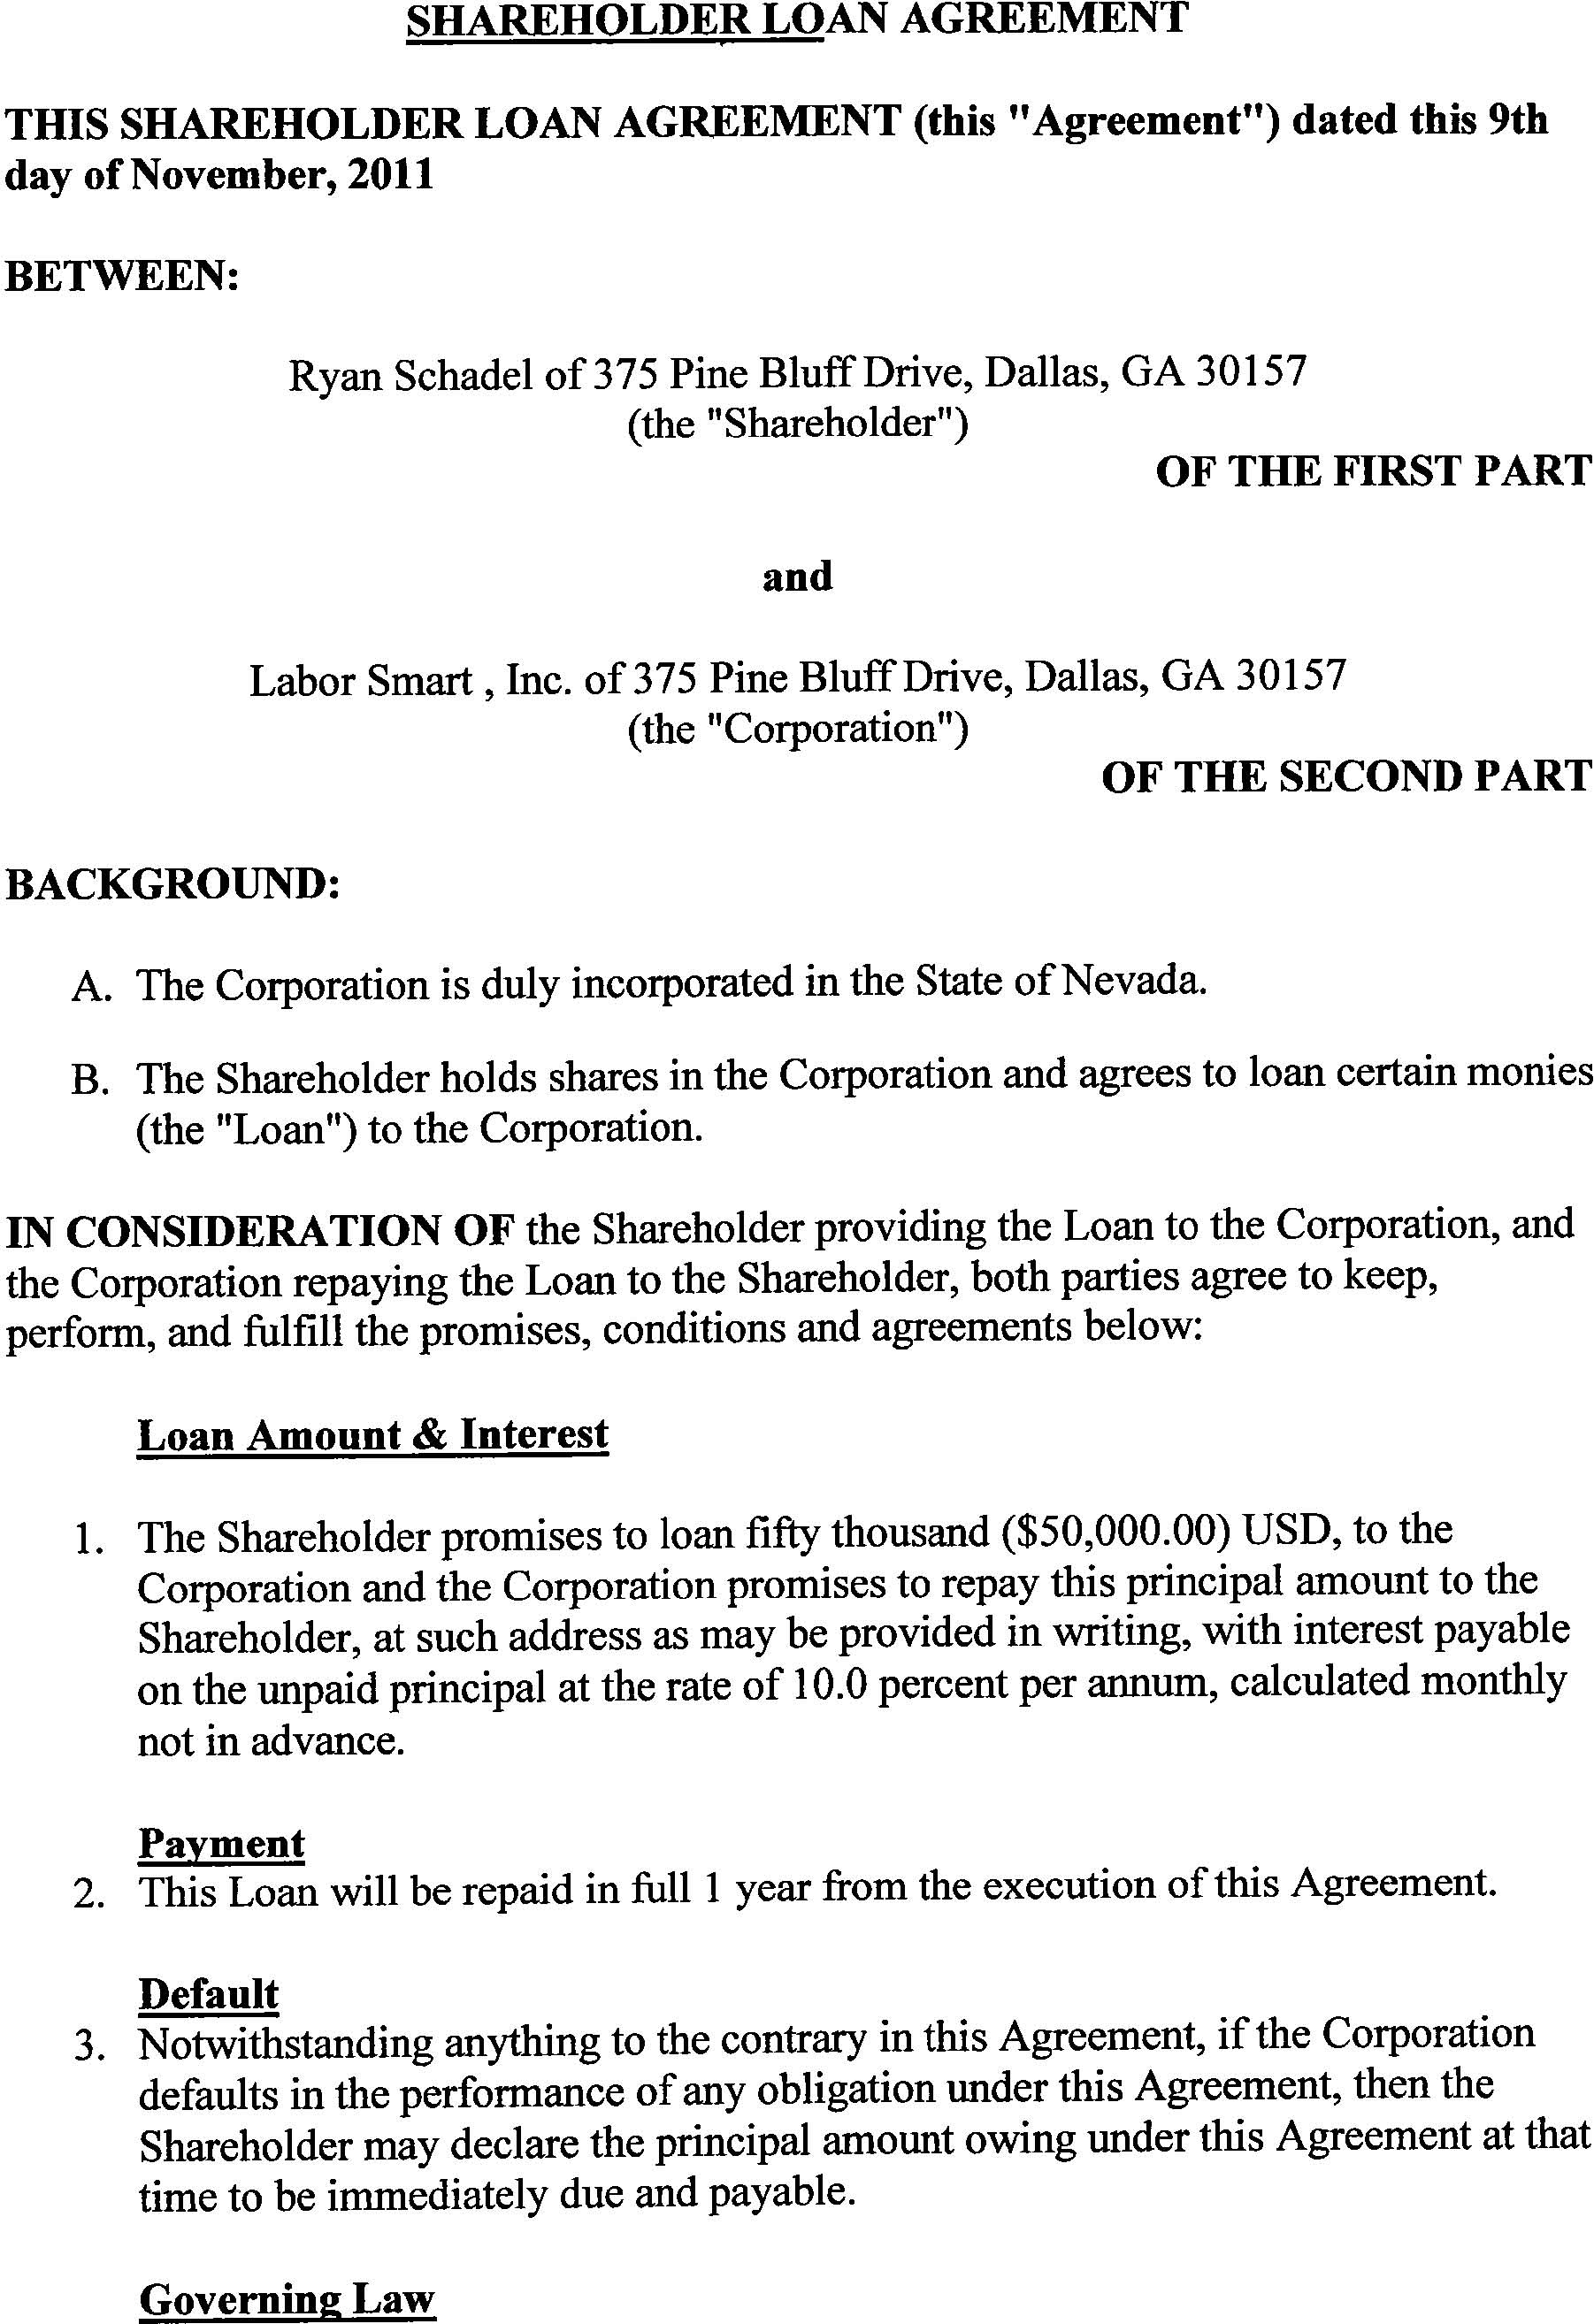 Labor smart inc form s 1 a ex 10 1 shareholder for Directors loan to company agreement template